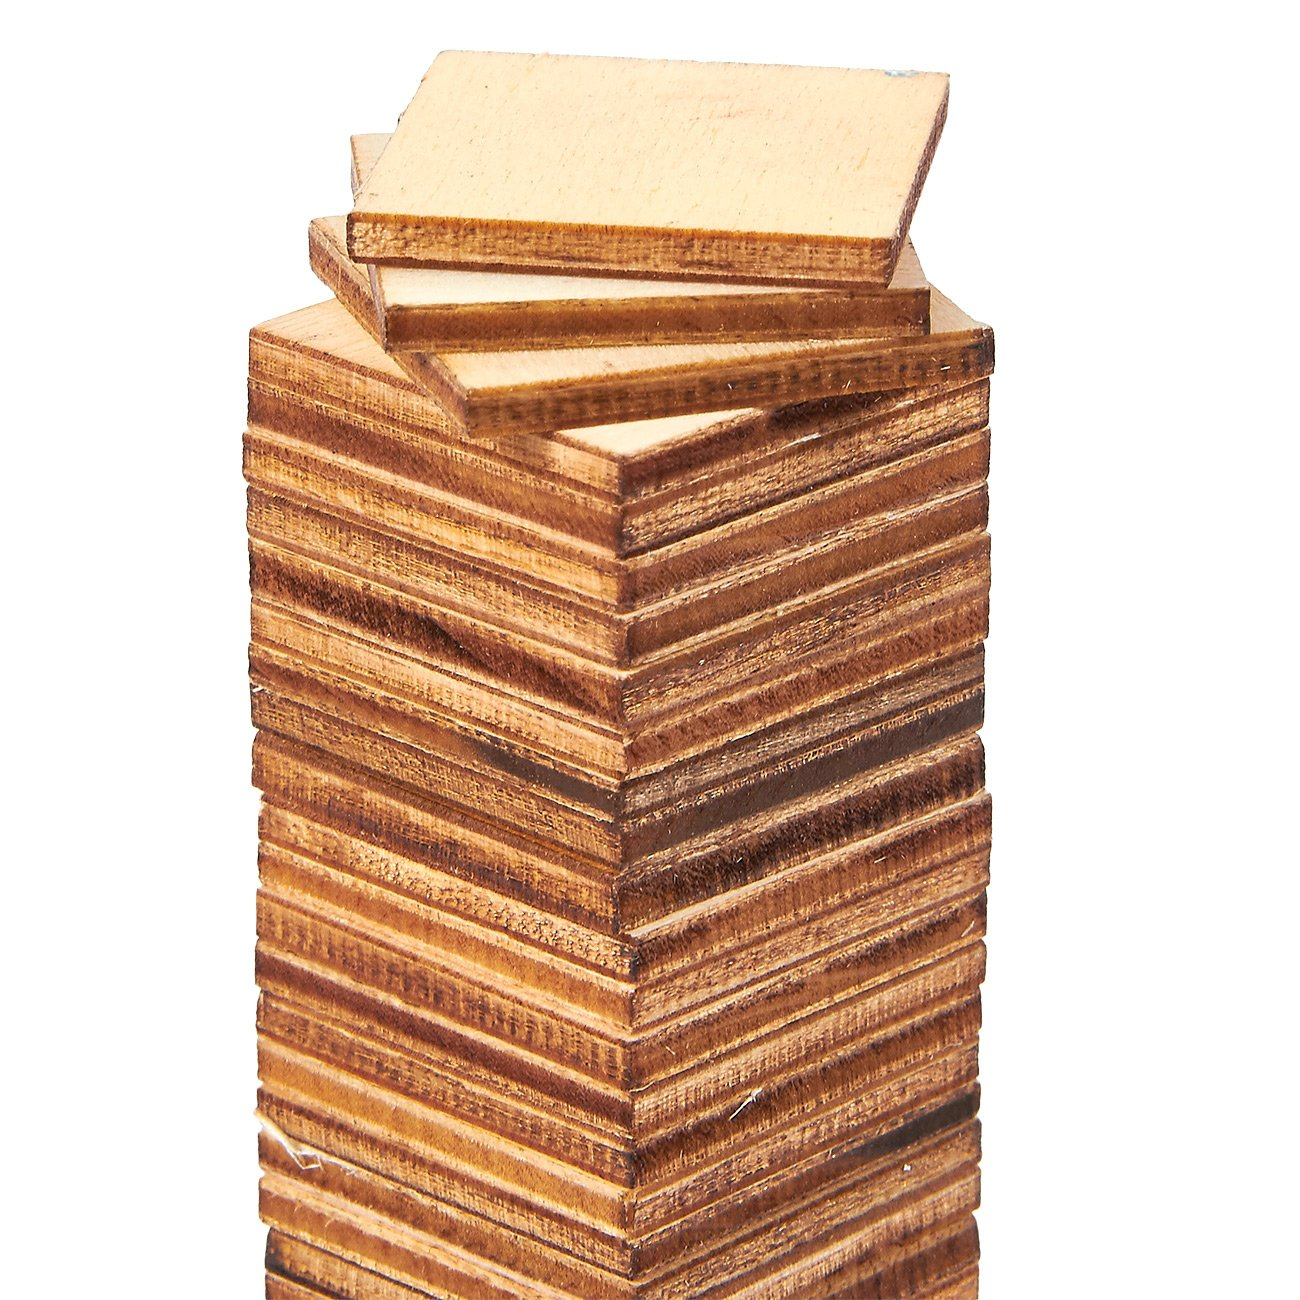 1 x 1 inches Natural Rustic Craft Wood for Home Decoration DIY Supplies Unfinished Wood Pieces 100-Pack Wooden Squares Cutout Tiles